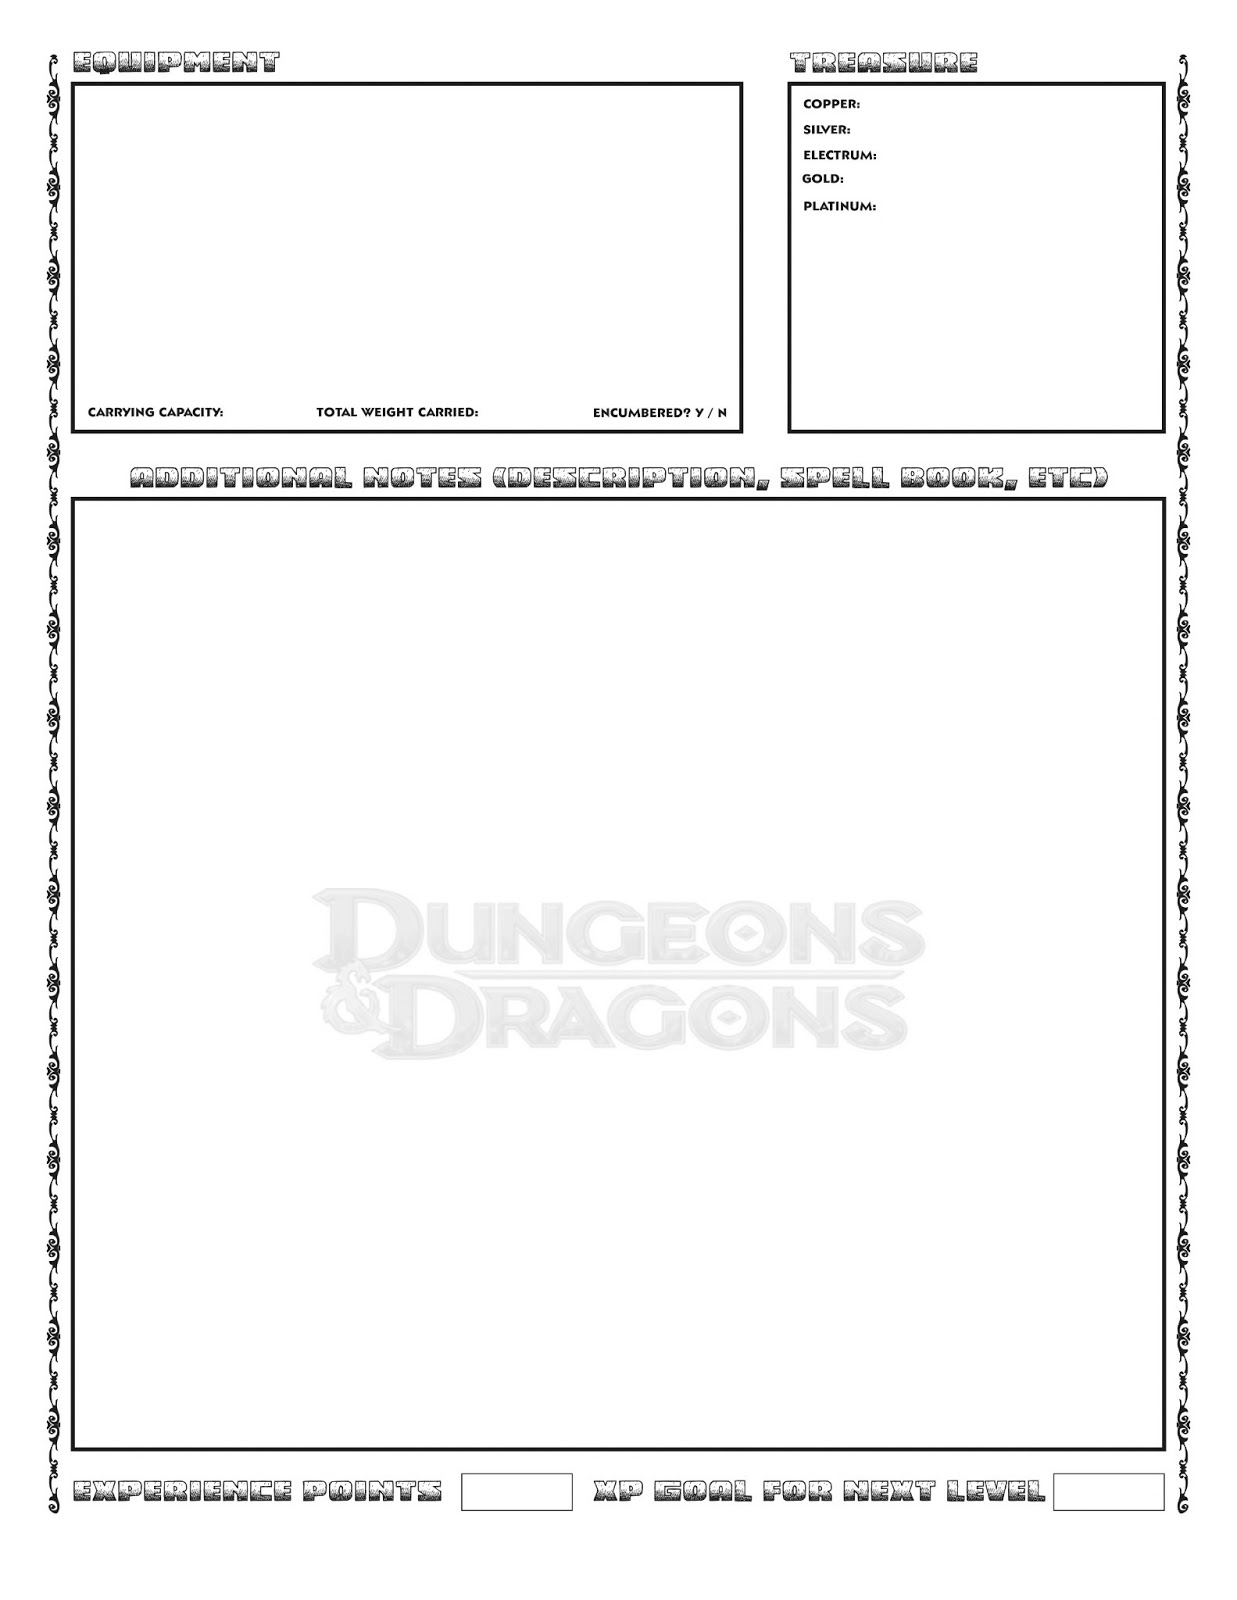 ad&d 1st edition character sheet pdf